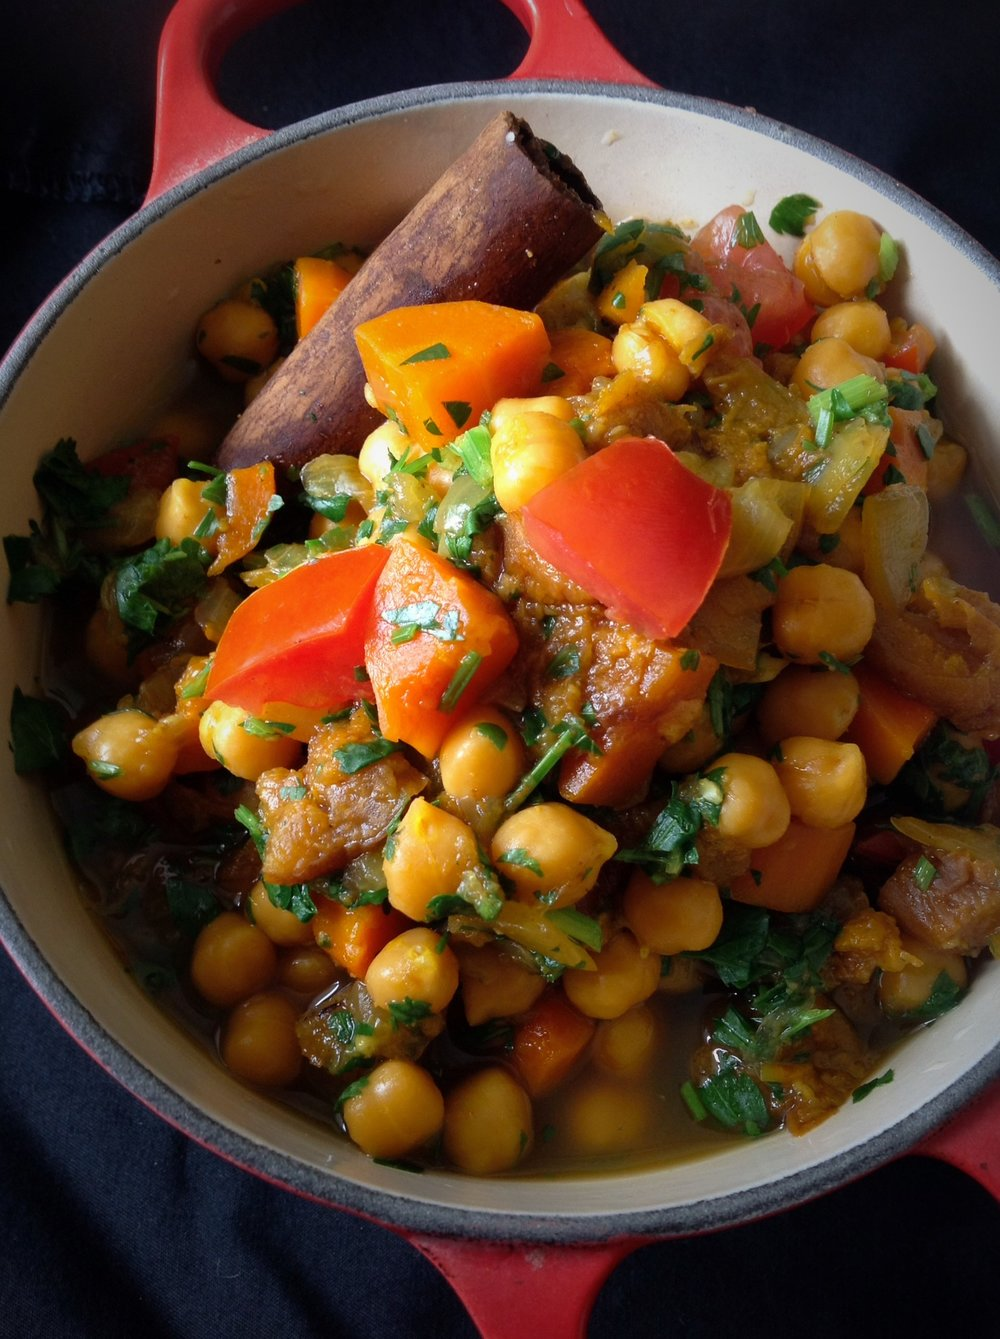 Moroccan Chickpea Tagine Stew - Healthy, Plant-Based, Gluten-Free, Oil-Free, Vegan Comfort Food Middle Eastern Recipe